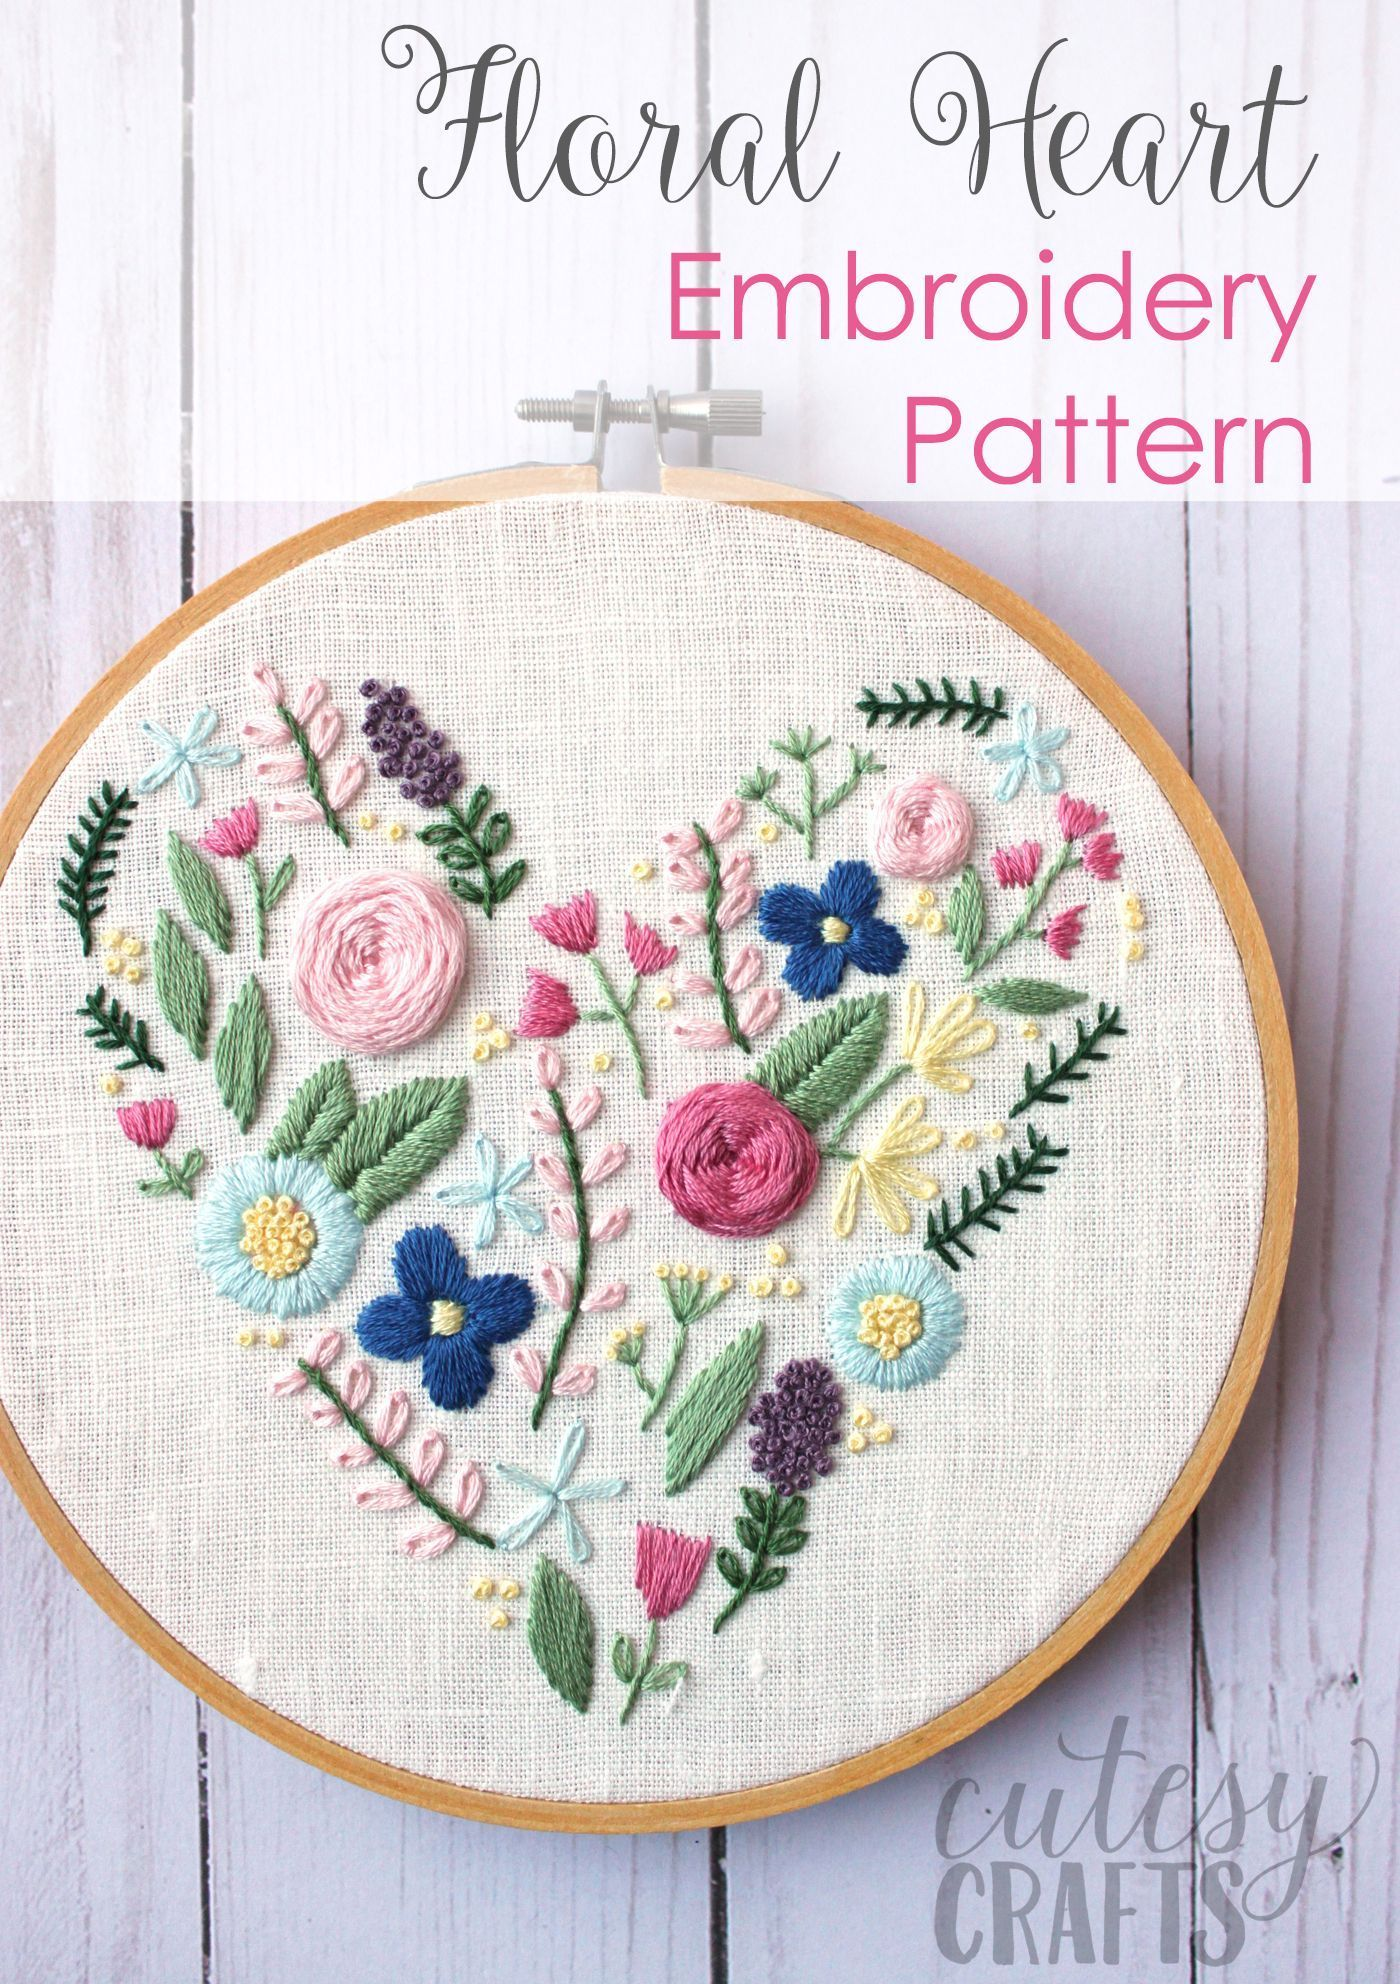 Learn hand embroidery stitches with this beautiful free floral